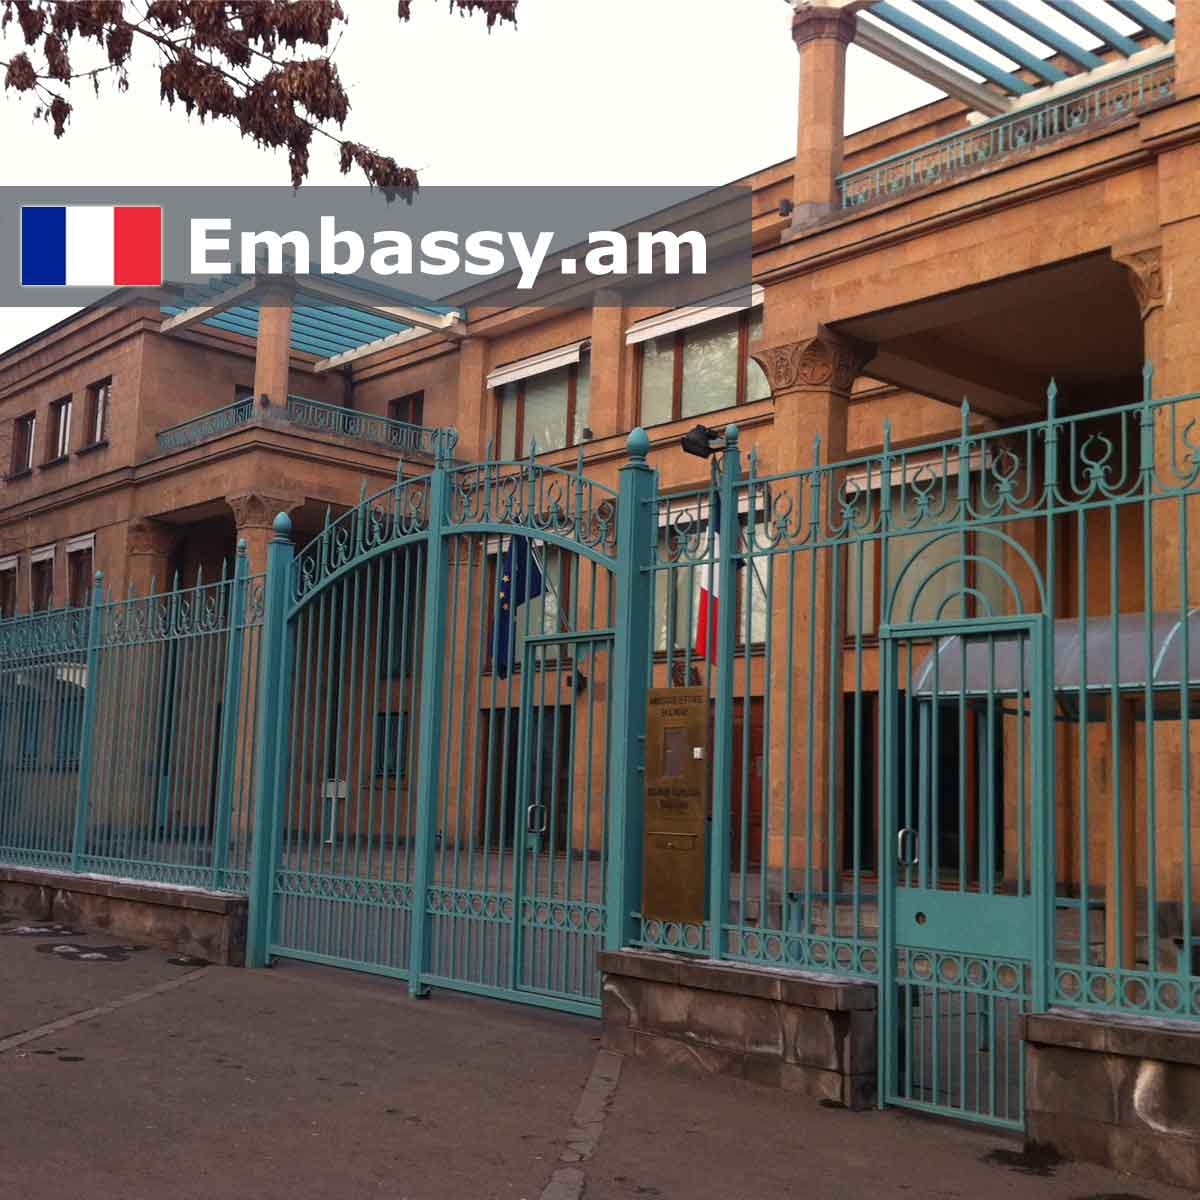 Embassy of the French Republic: www.EMBASSY.am